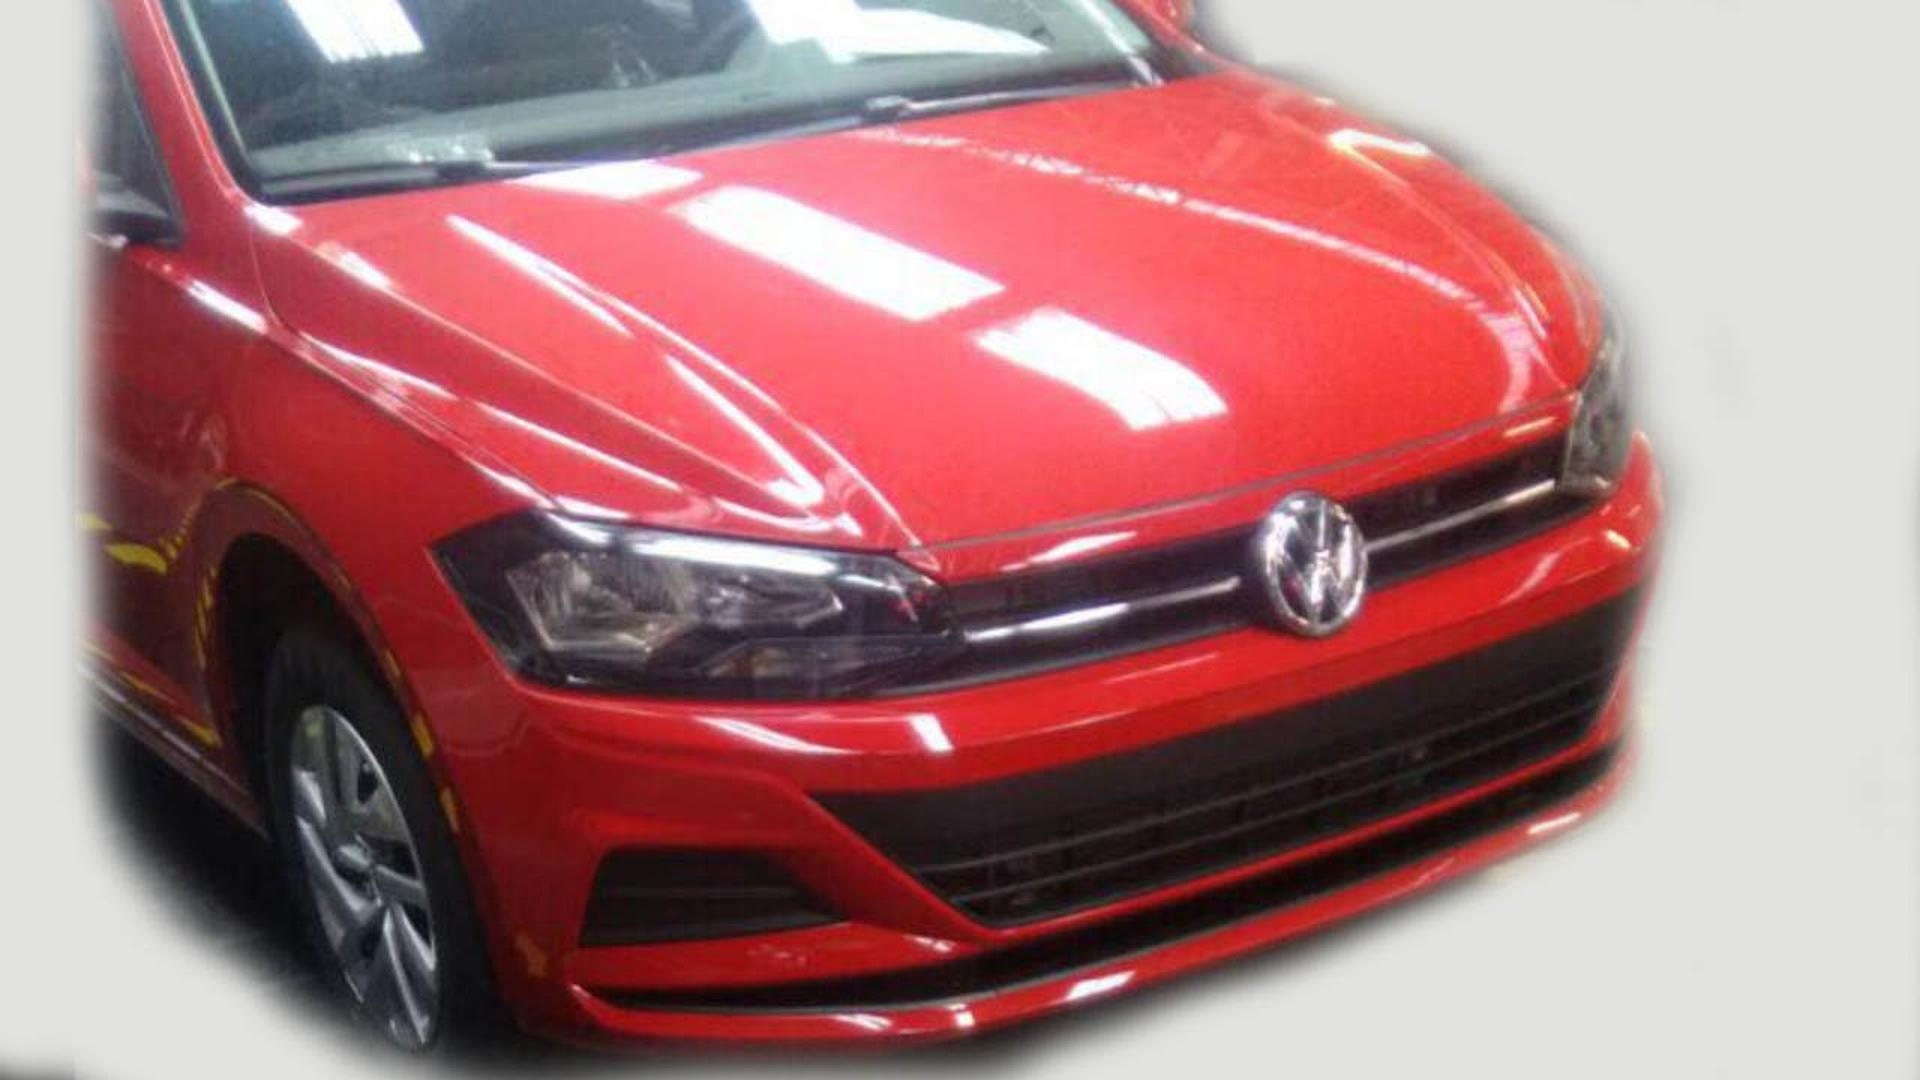 2018 volkswagen sedan. Simple Sedan Ahead Of Its Debut Later This Year The 2018 Virtus Has Been Photographed  Completely Undisguised By Motor1 Brazil As Youu0027d Expect From Volkswagen  On Volkswagen Sedan